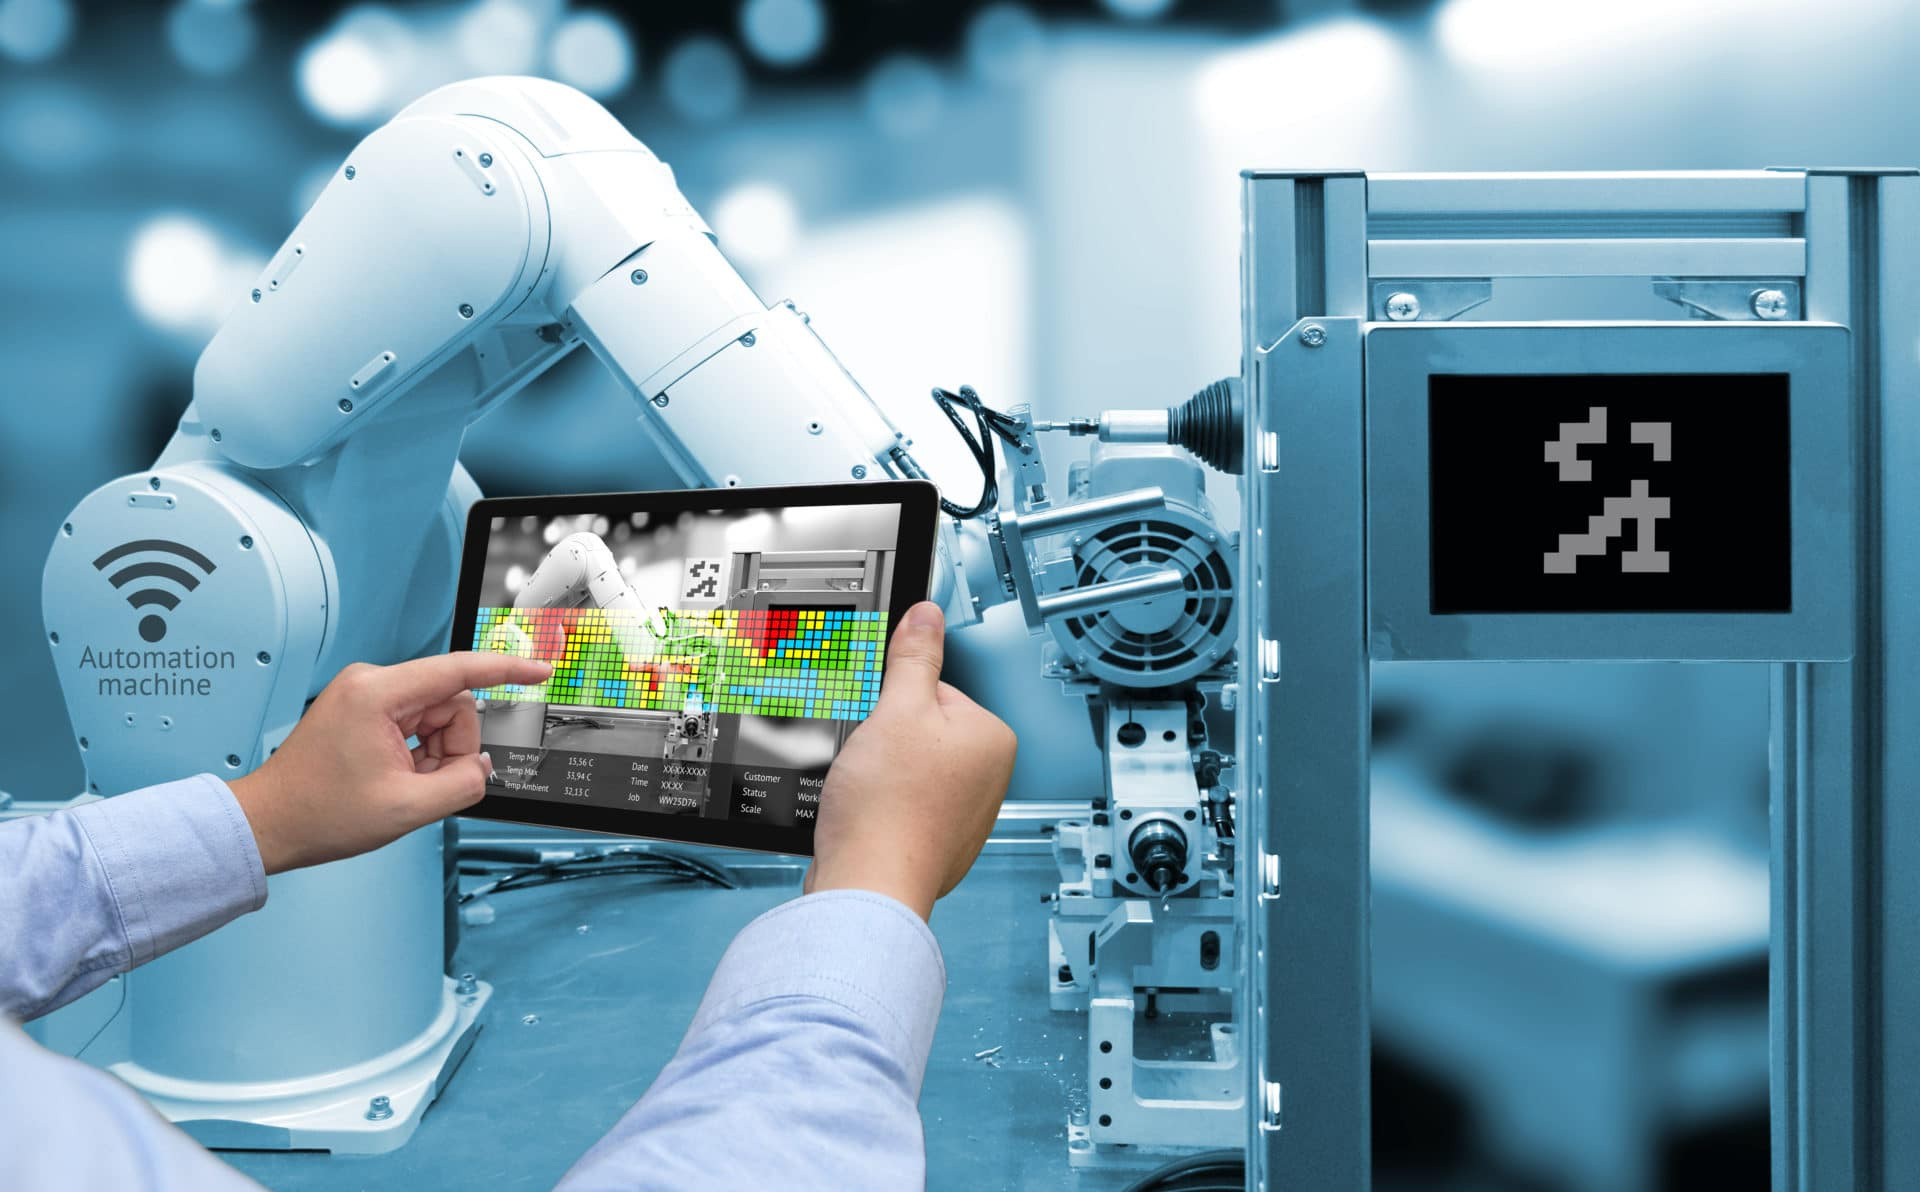 smart manufacturing digital transformation digital trends manufacturers IoT